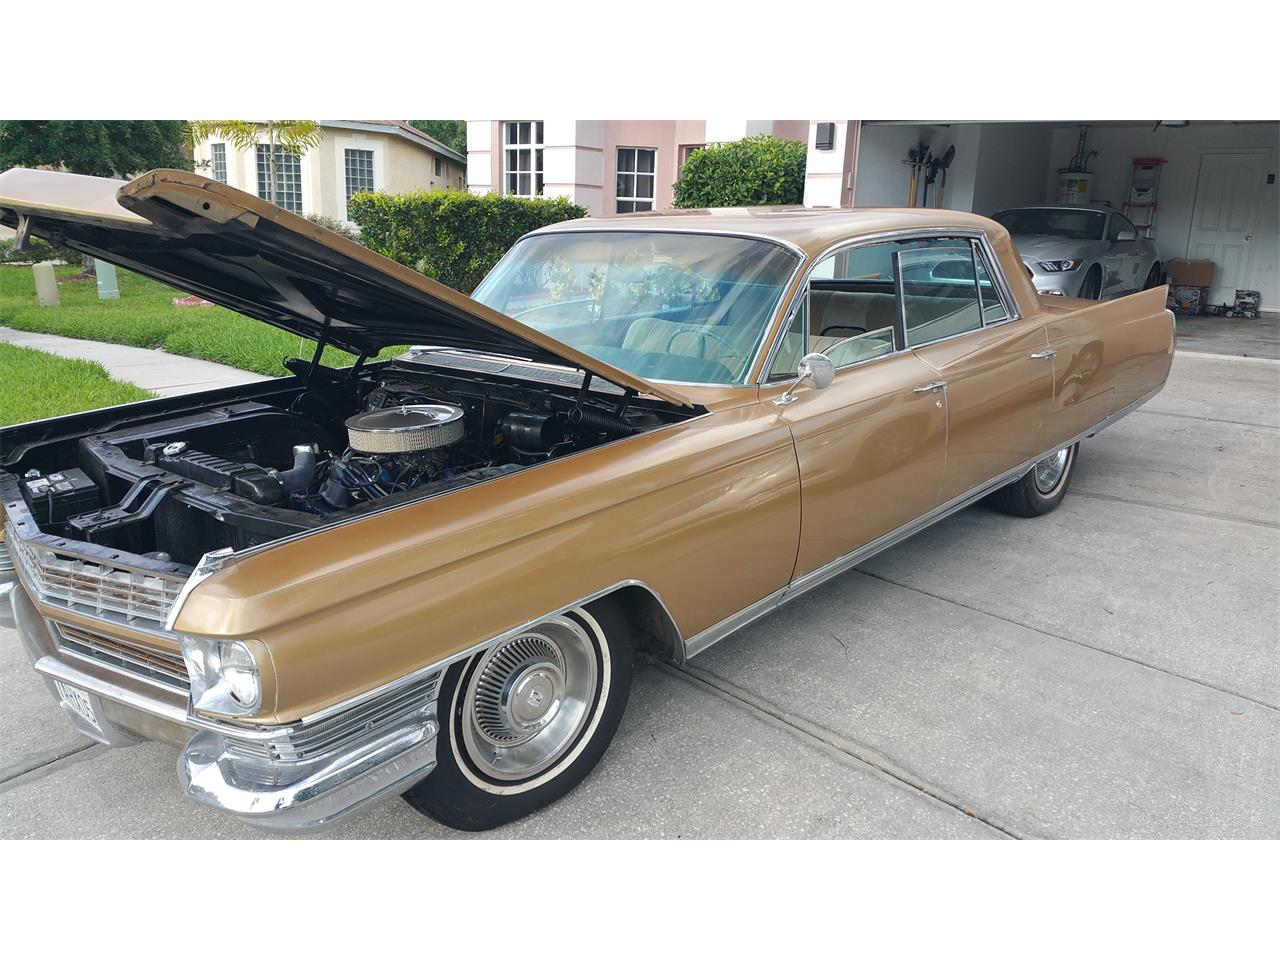 Large Picture of Classic 1964 Cadillac Fleetwood 60 Special located in Clemmons North Carolina Offered by a Private Seller - IDPD